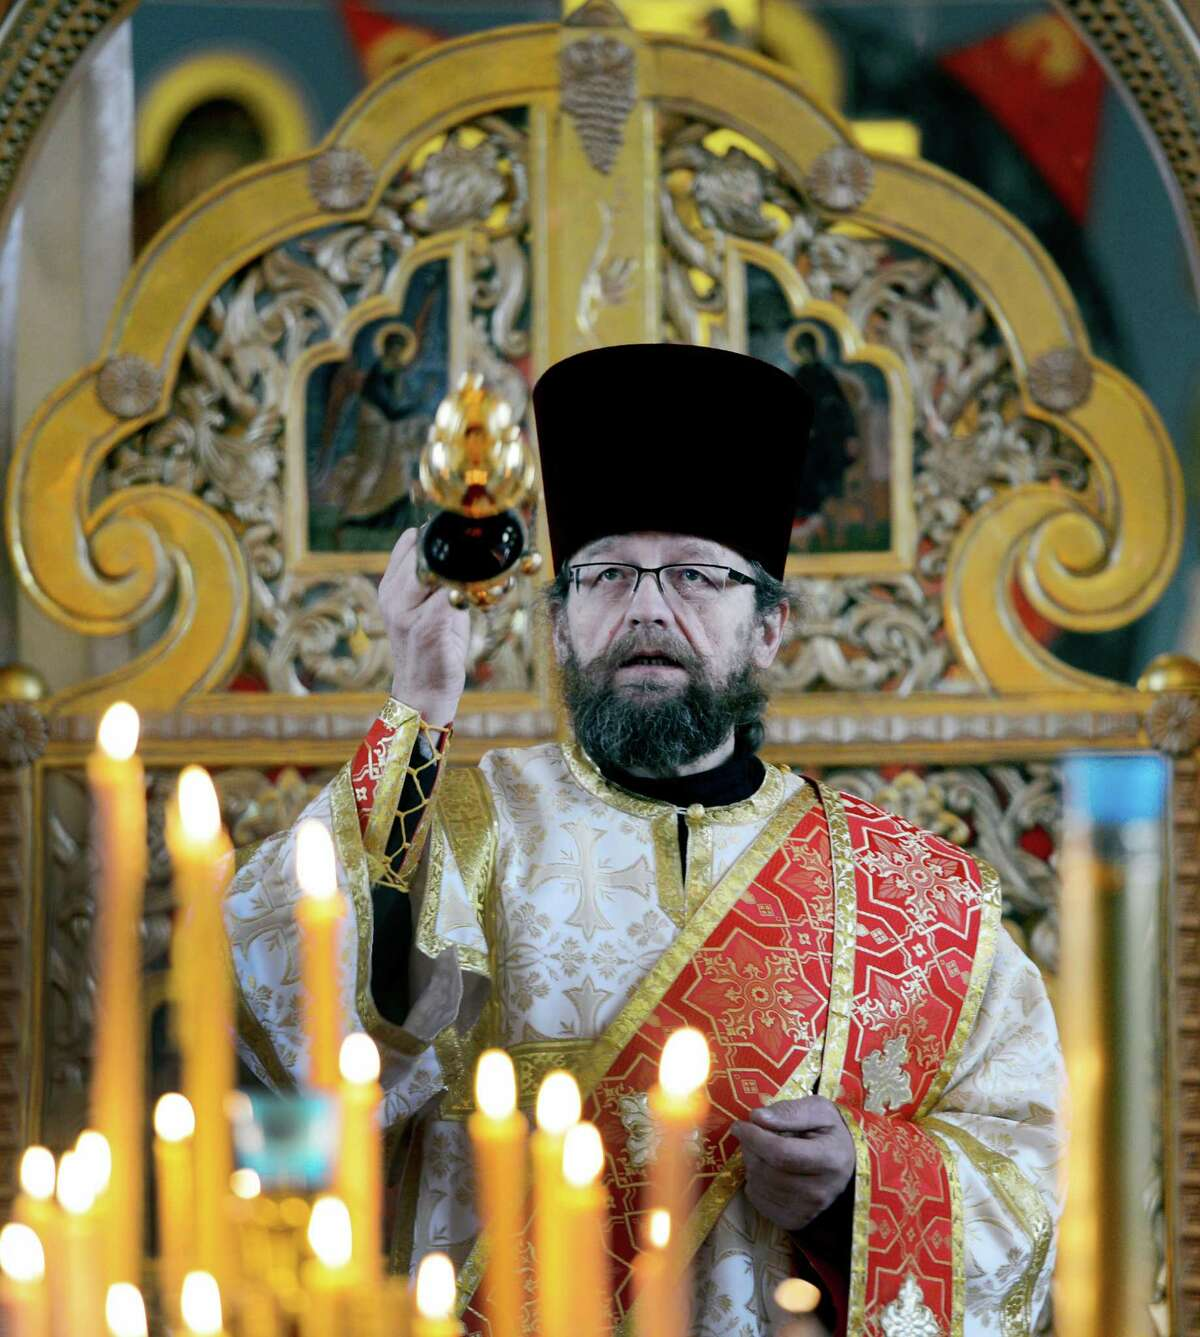 Deacon Michael Soloviev burns incense before the Christmas Day celebration at the Nativity of the Mother of God Russian Orthodox Church Monday morning, Jan. 7, 2013, in Colonie, N.Y. The Russian Orthodox Church uses the